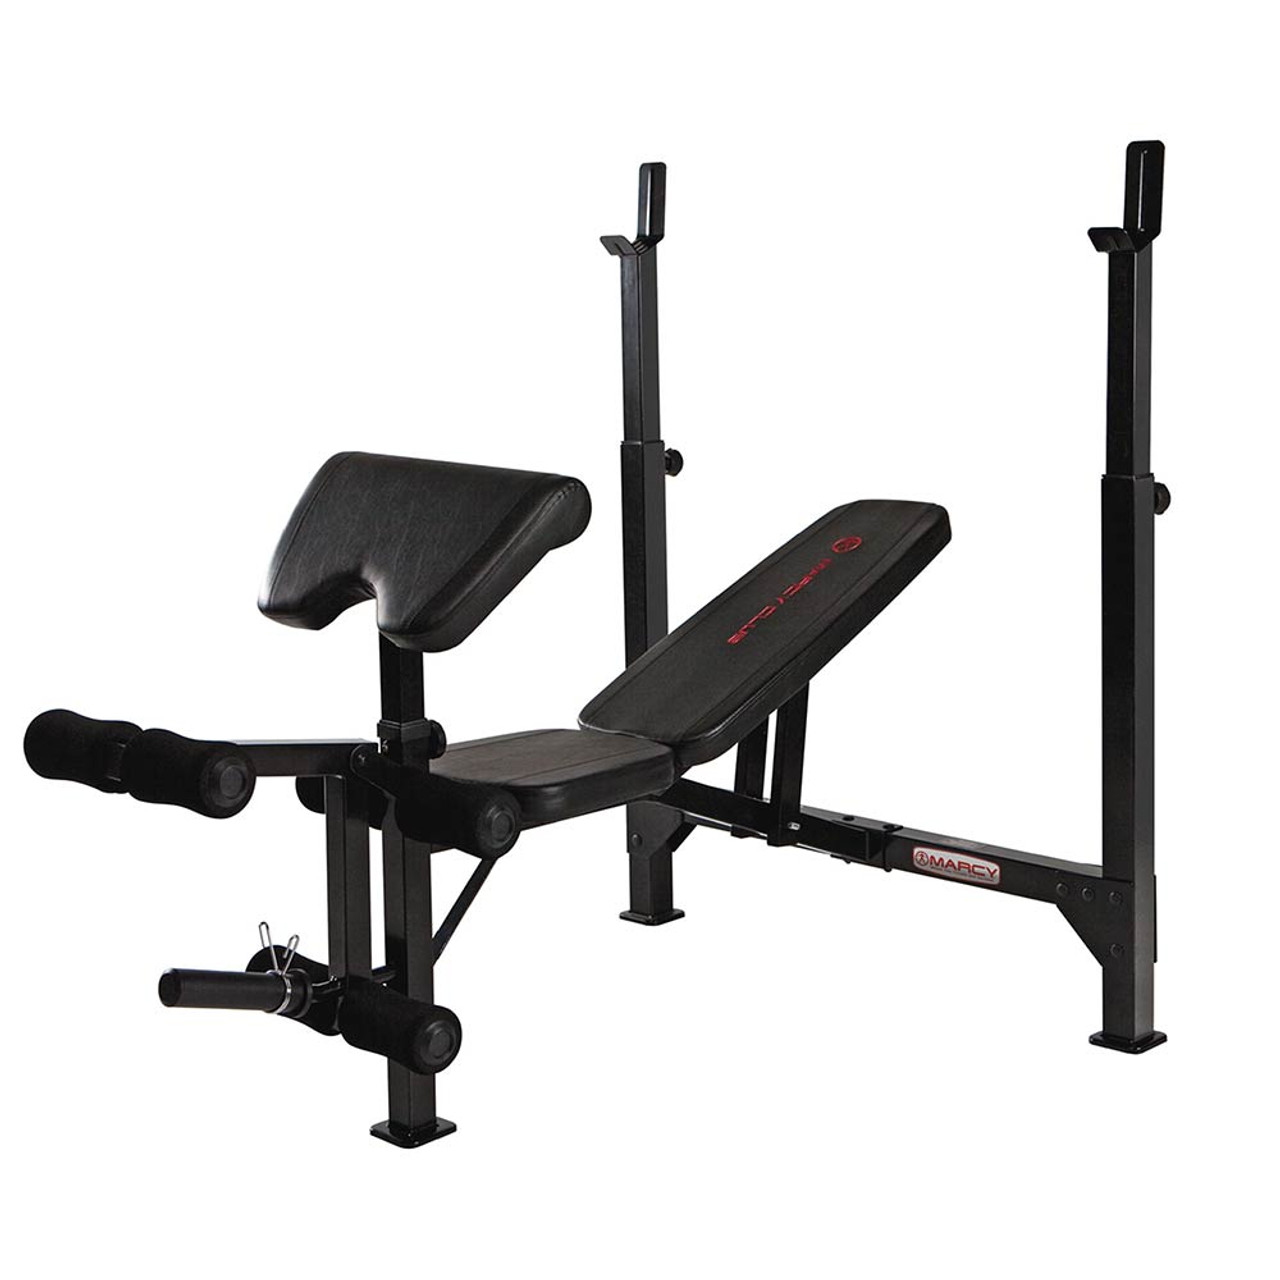 diamond with marcy uk outdoors bench rack co squat elite size dp one black sports olympic amazon weight benches unisex